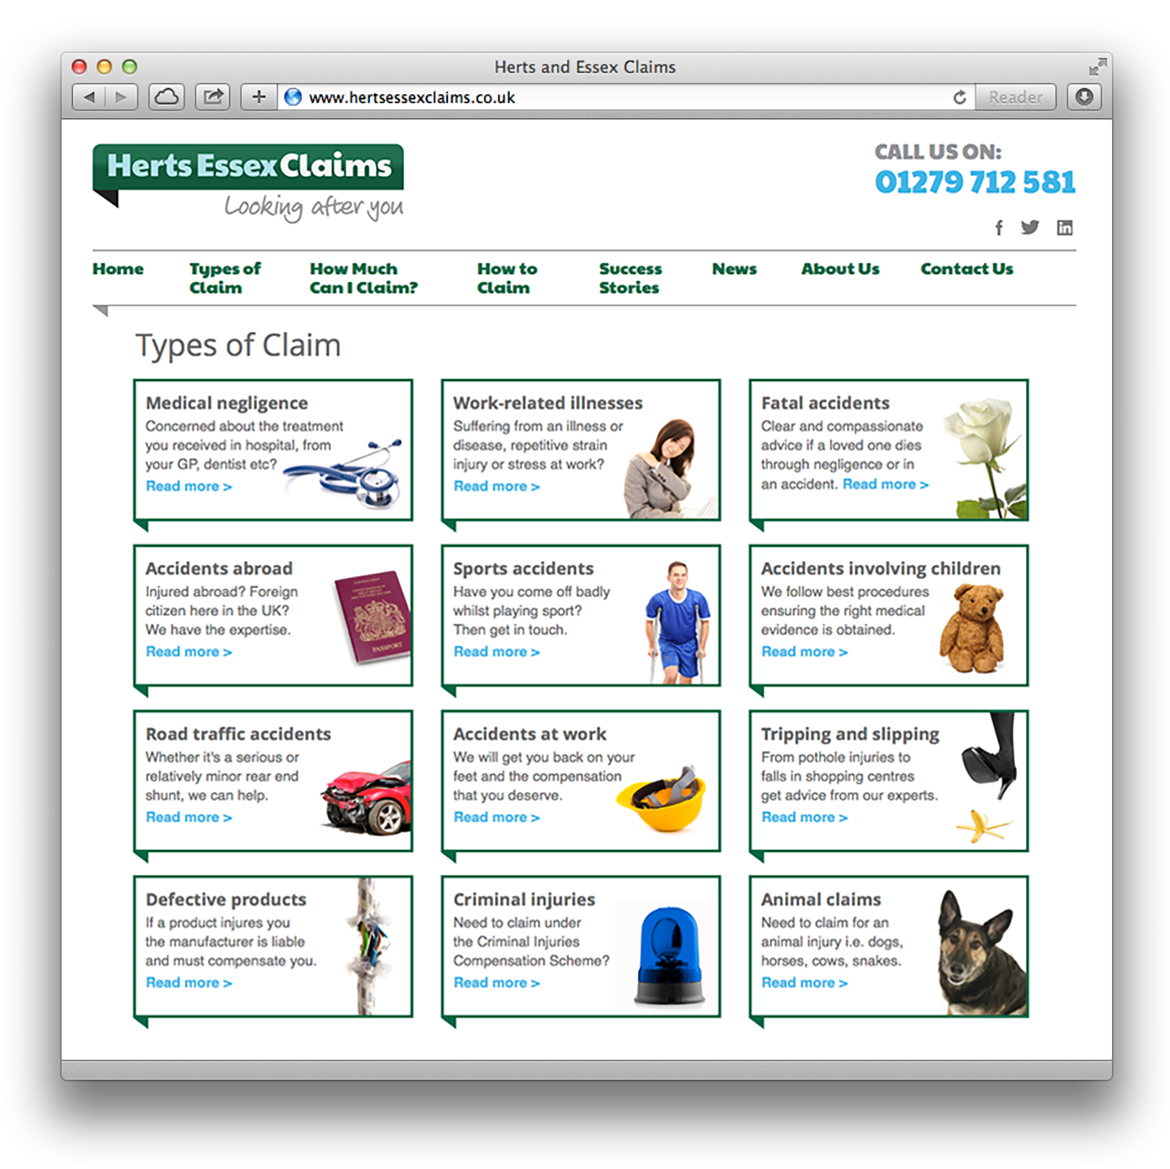 Herts Essex Claims Website - Types of Claim